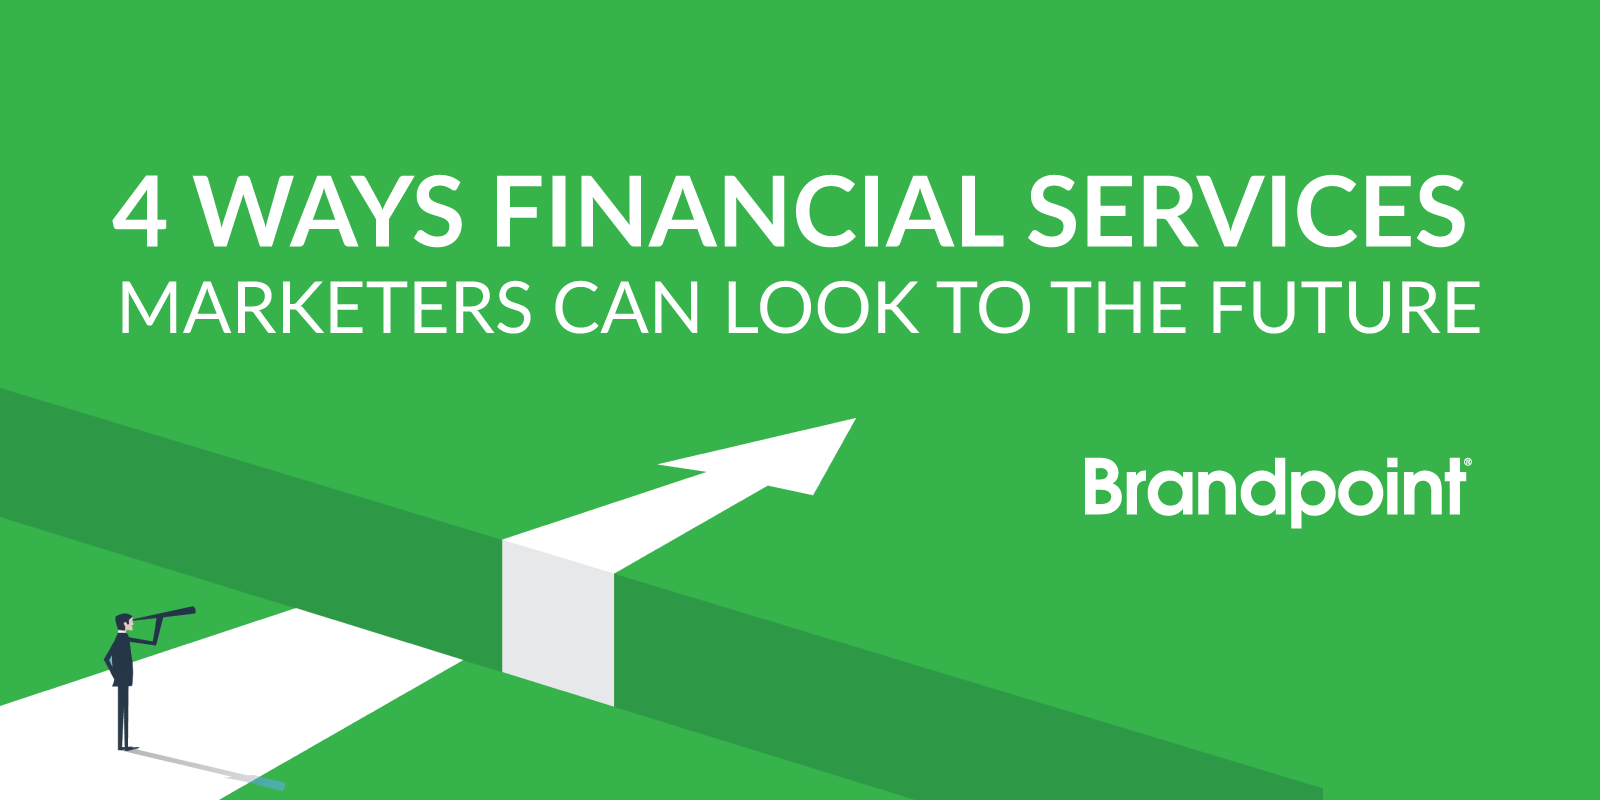 Financial Services During COVID